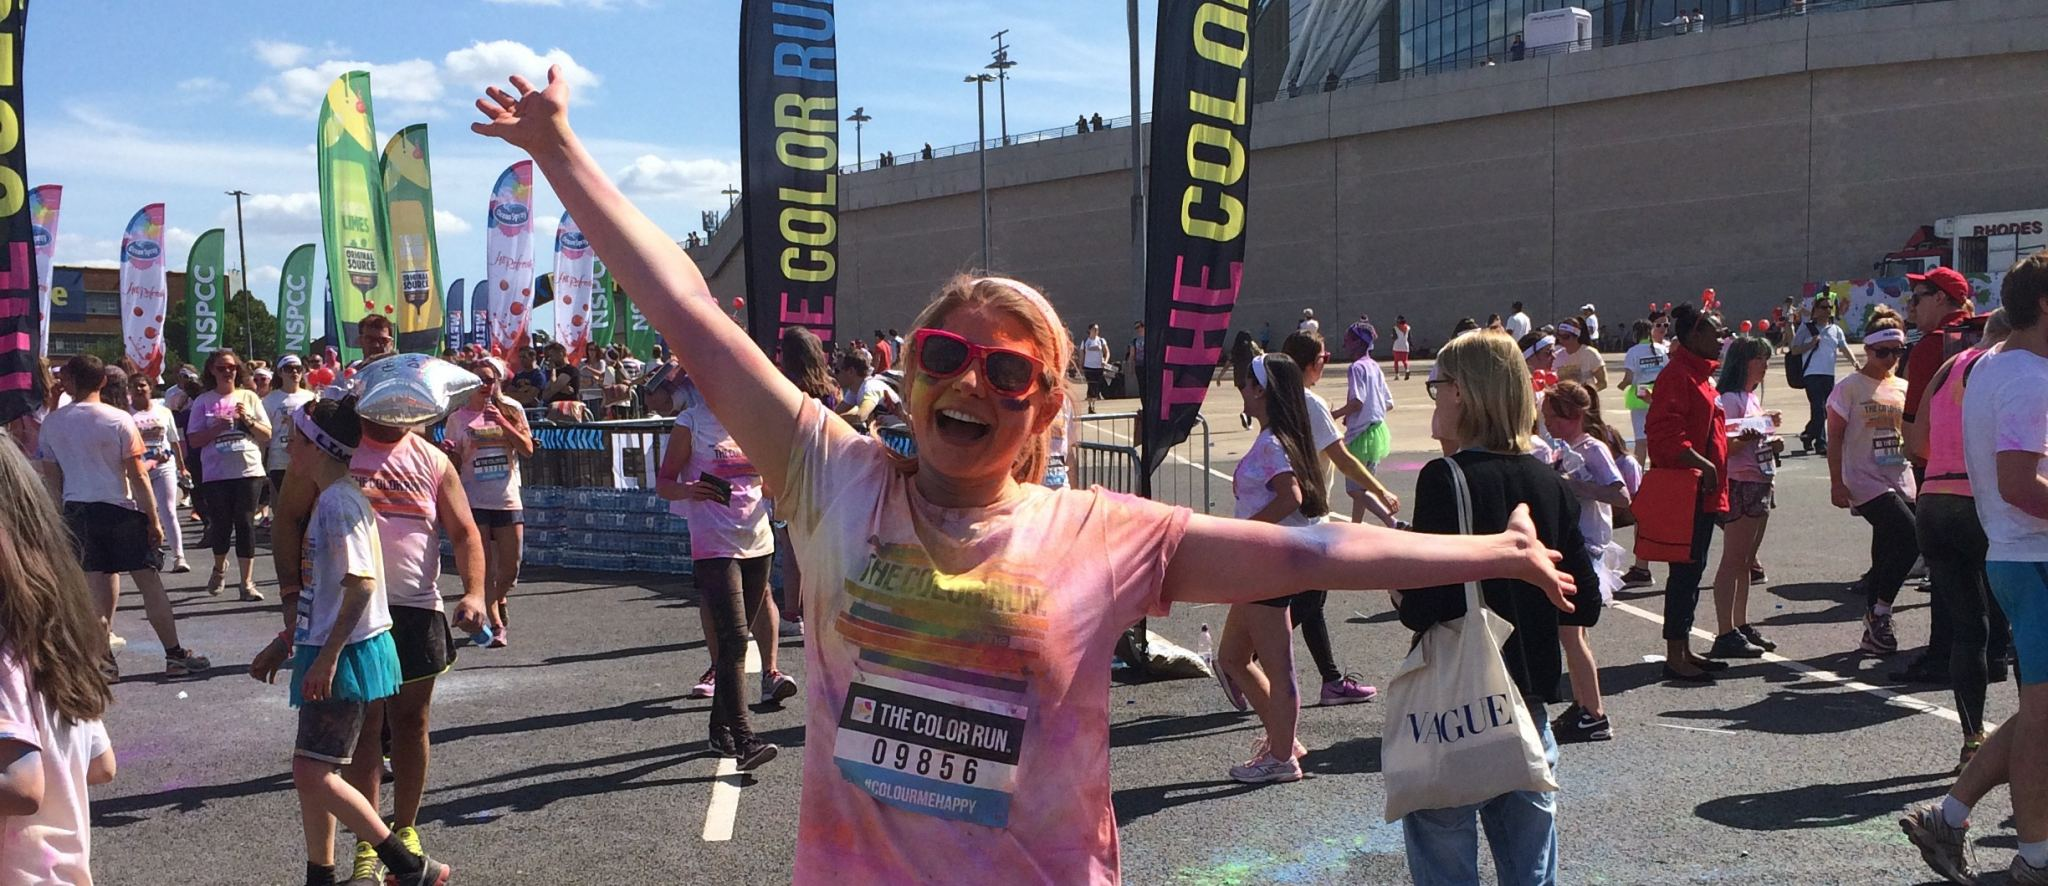 10 Reasons To Do The London Color Run